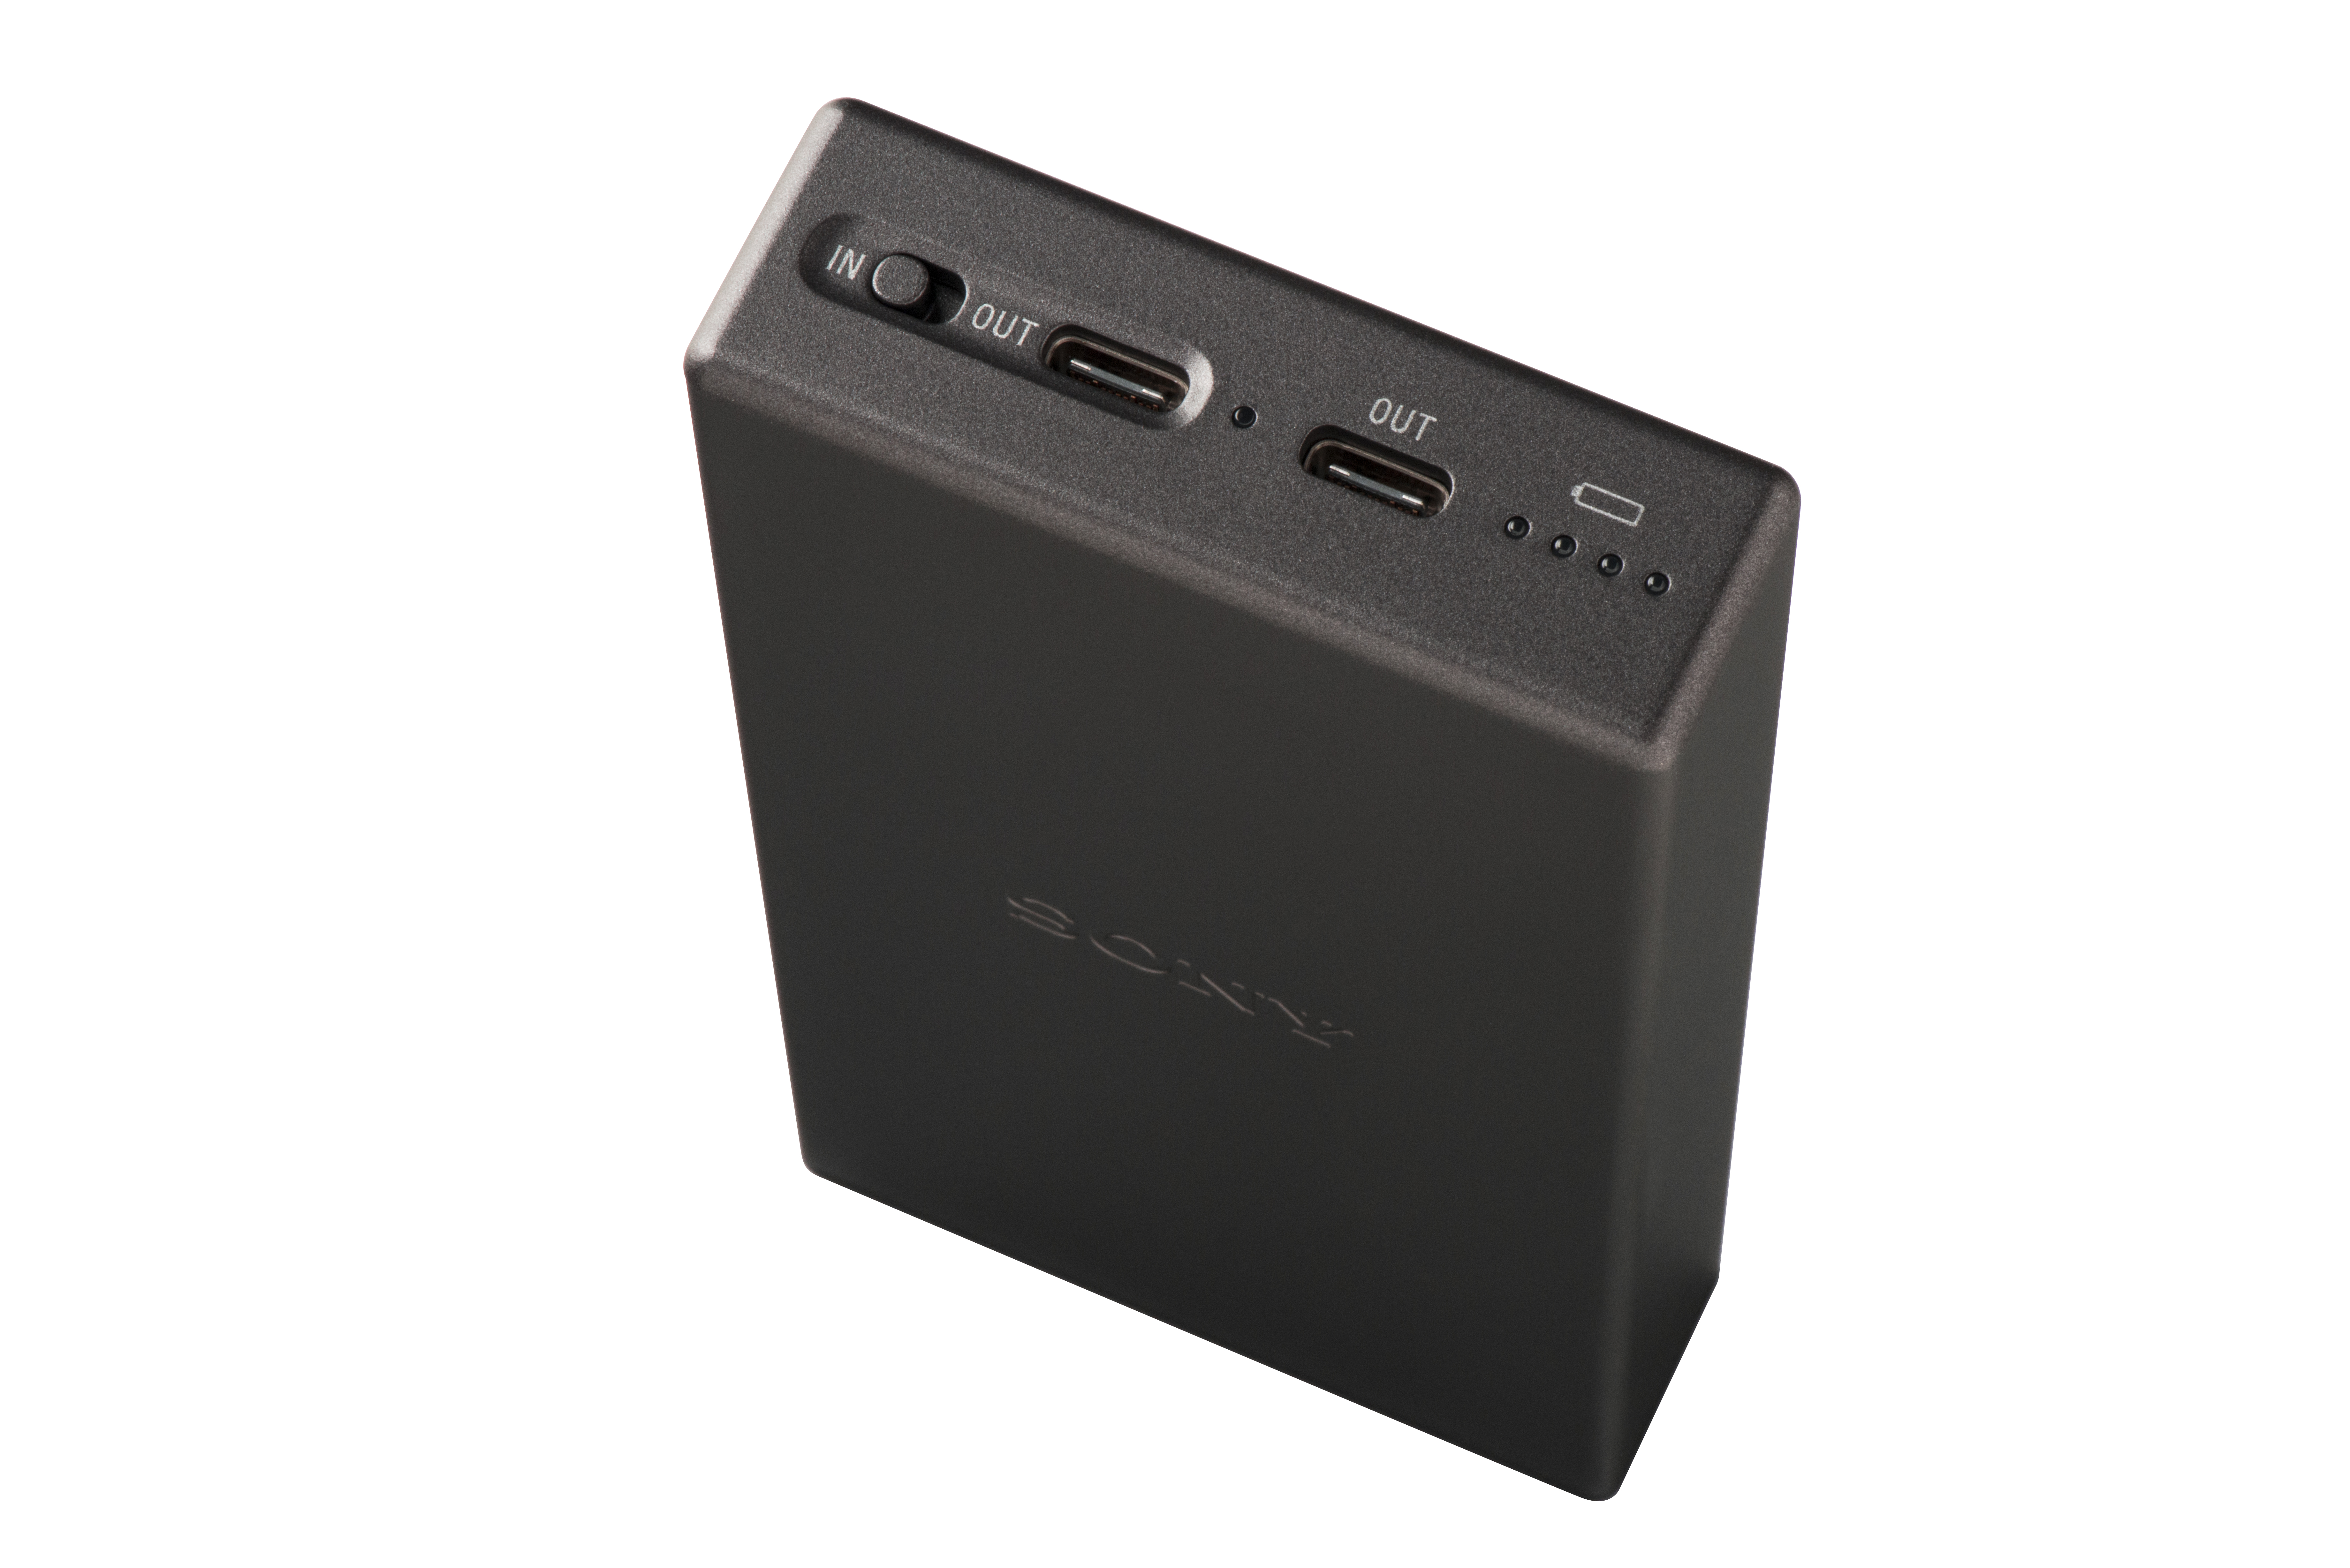 July 2016 Genghuis Personal Homepage Ariston An 15rs 350 Watt Water Heather Utilising Sonys Hybrid Gel Technology These Lithium Ion Polymer Batteries Are Able To Provide Up 1000 Charges In A Lifecycle